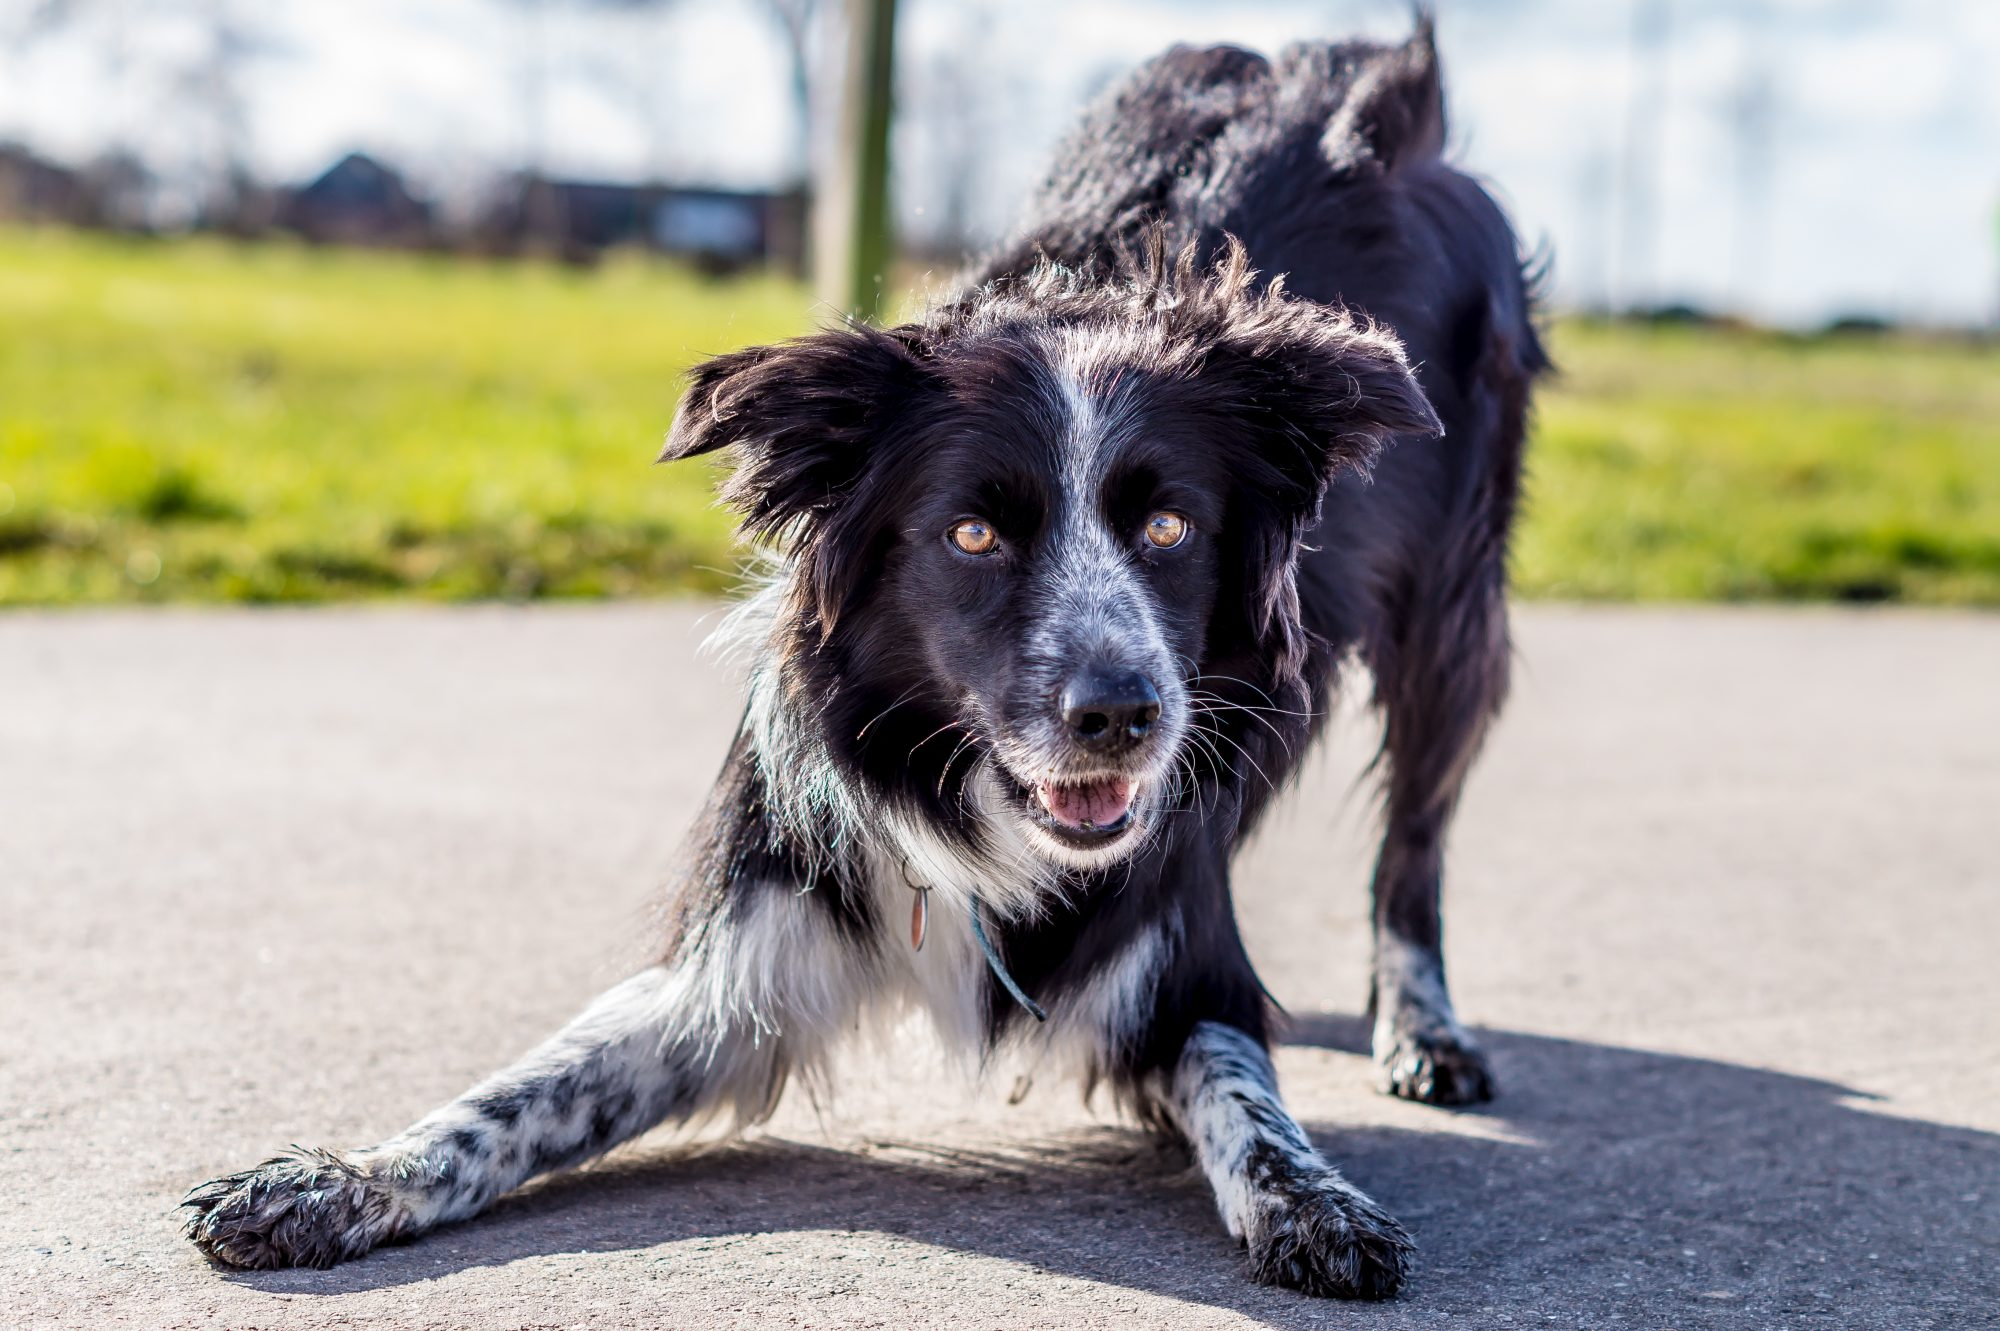 border collie play-bowing